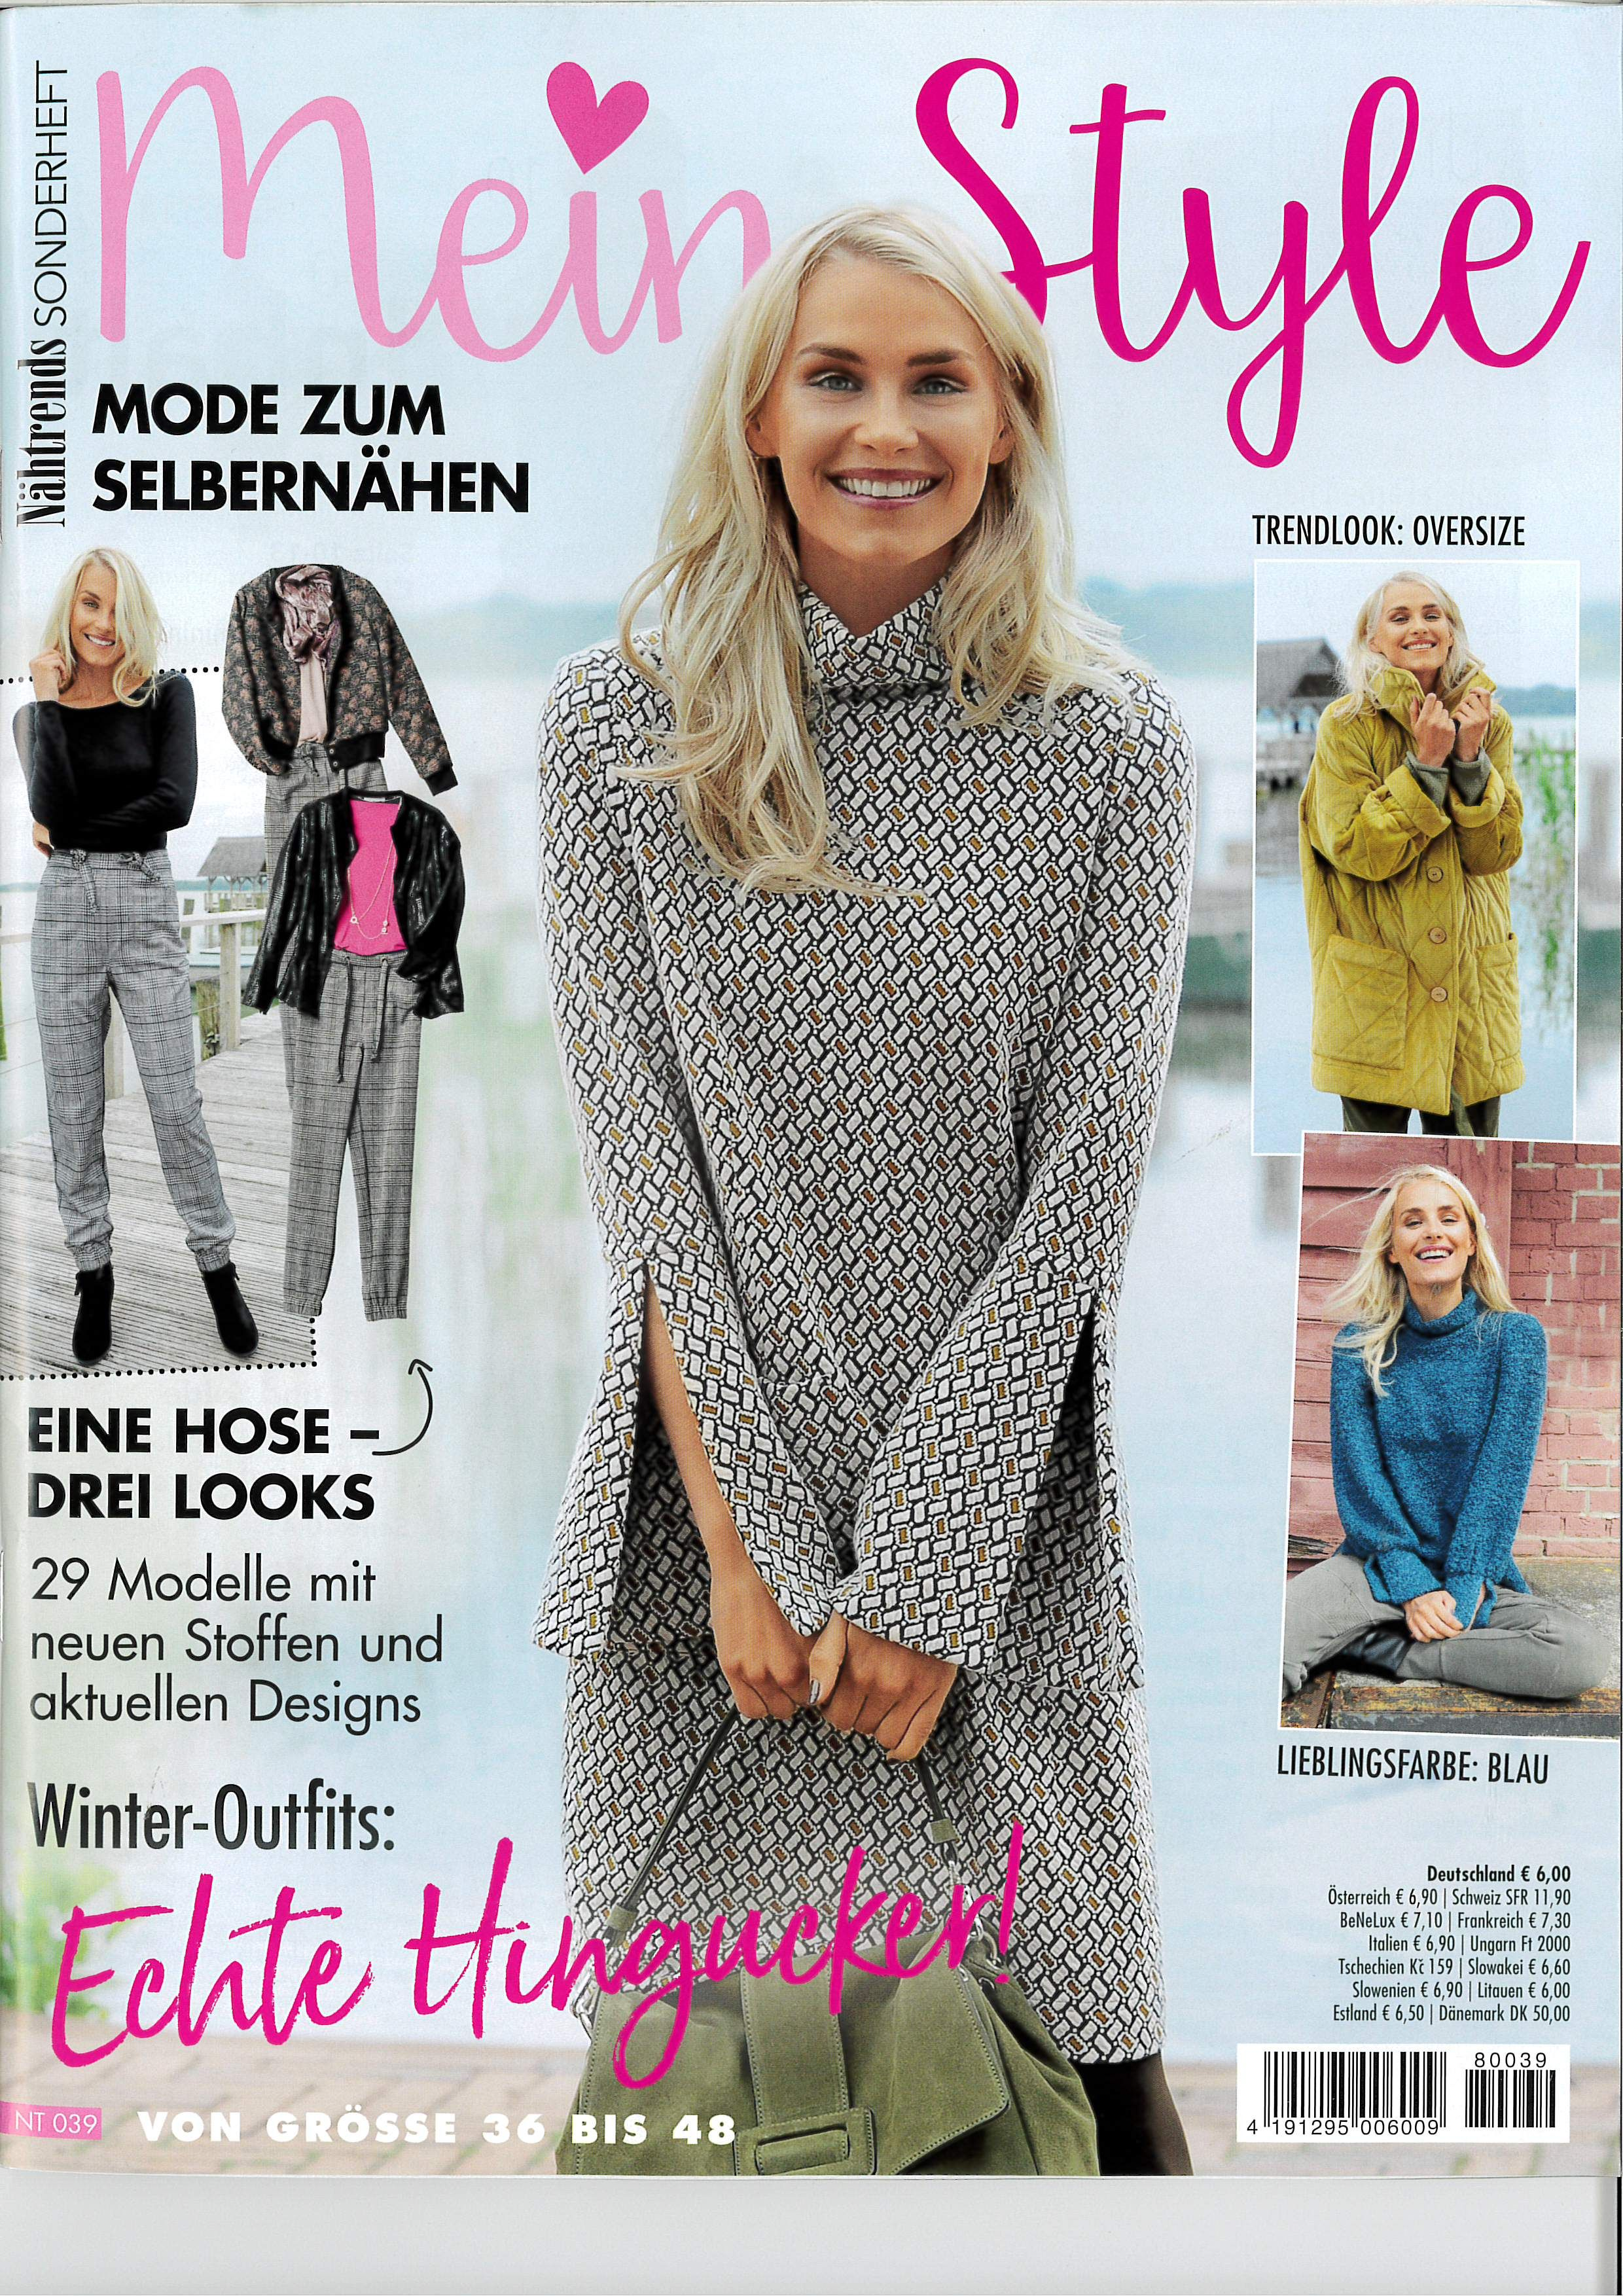 a965159be162 Nähtrends Sonderheft NT 039: Mein Style - Winter-Outfits Diese ...